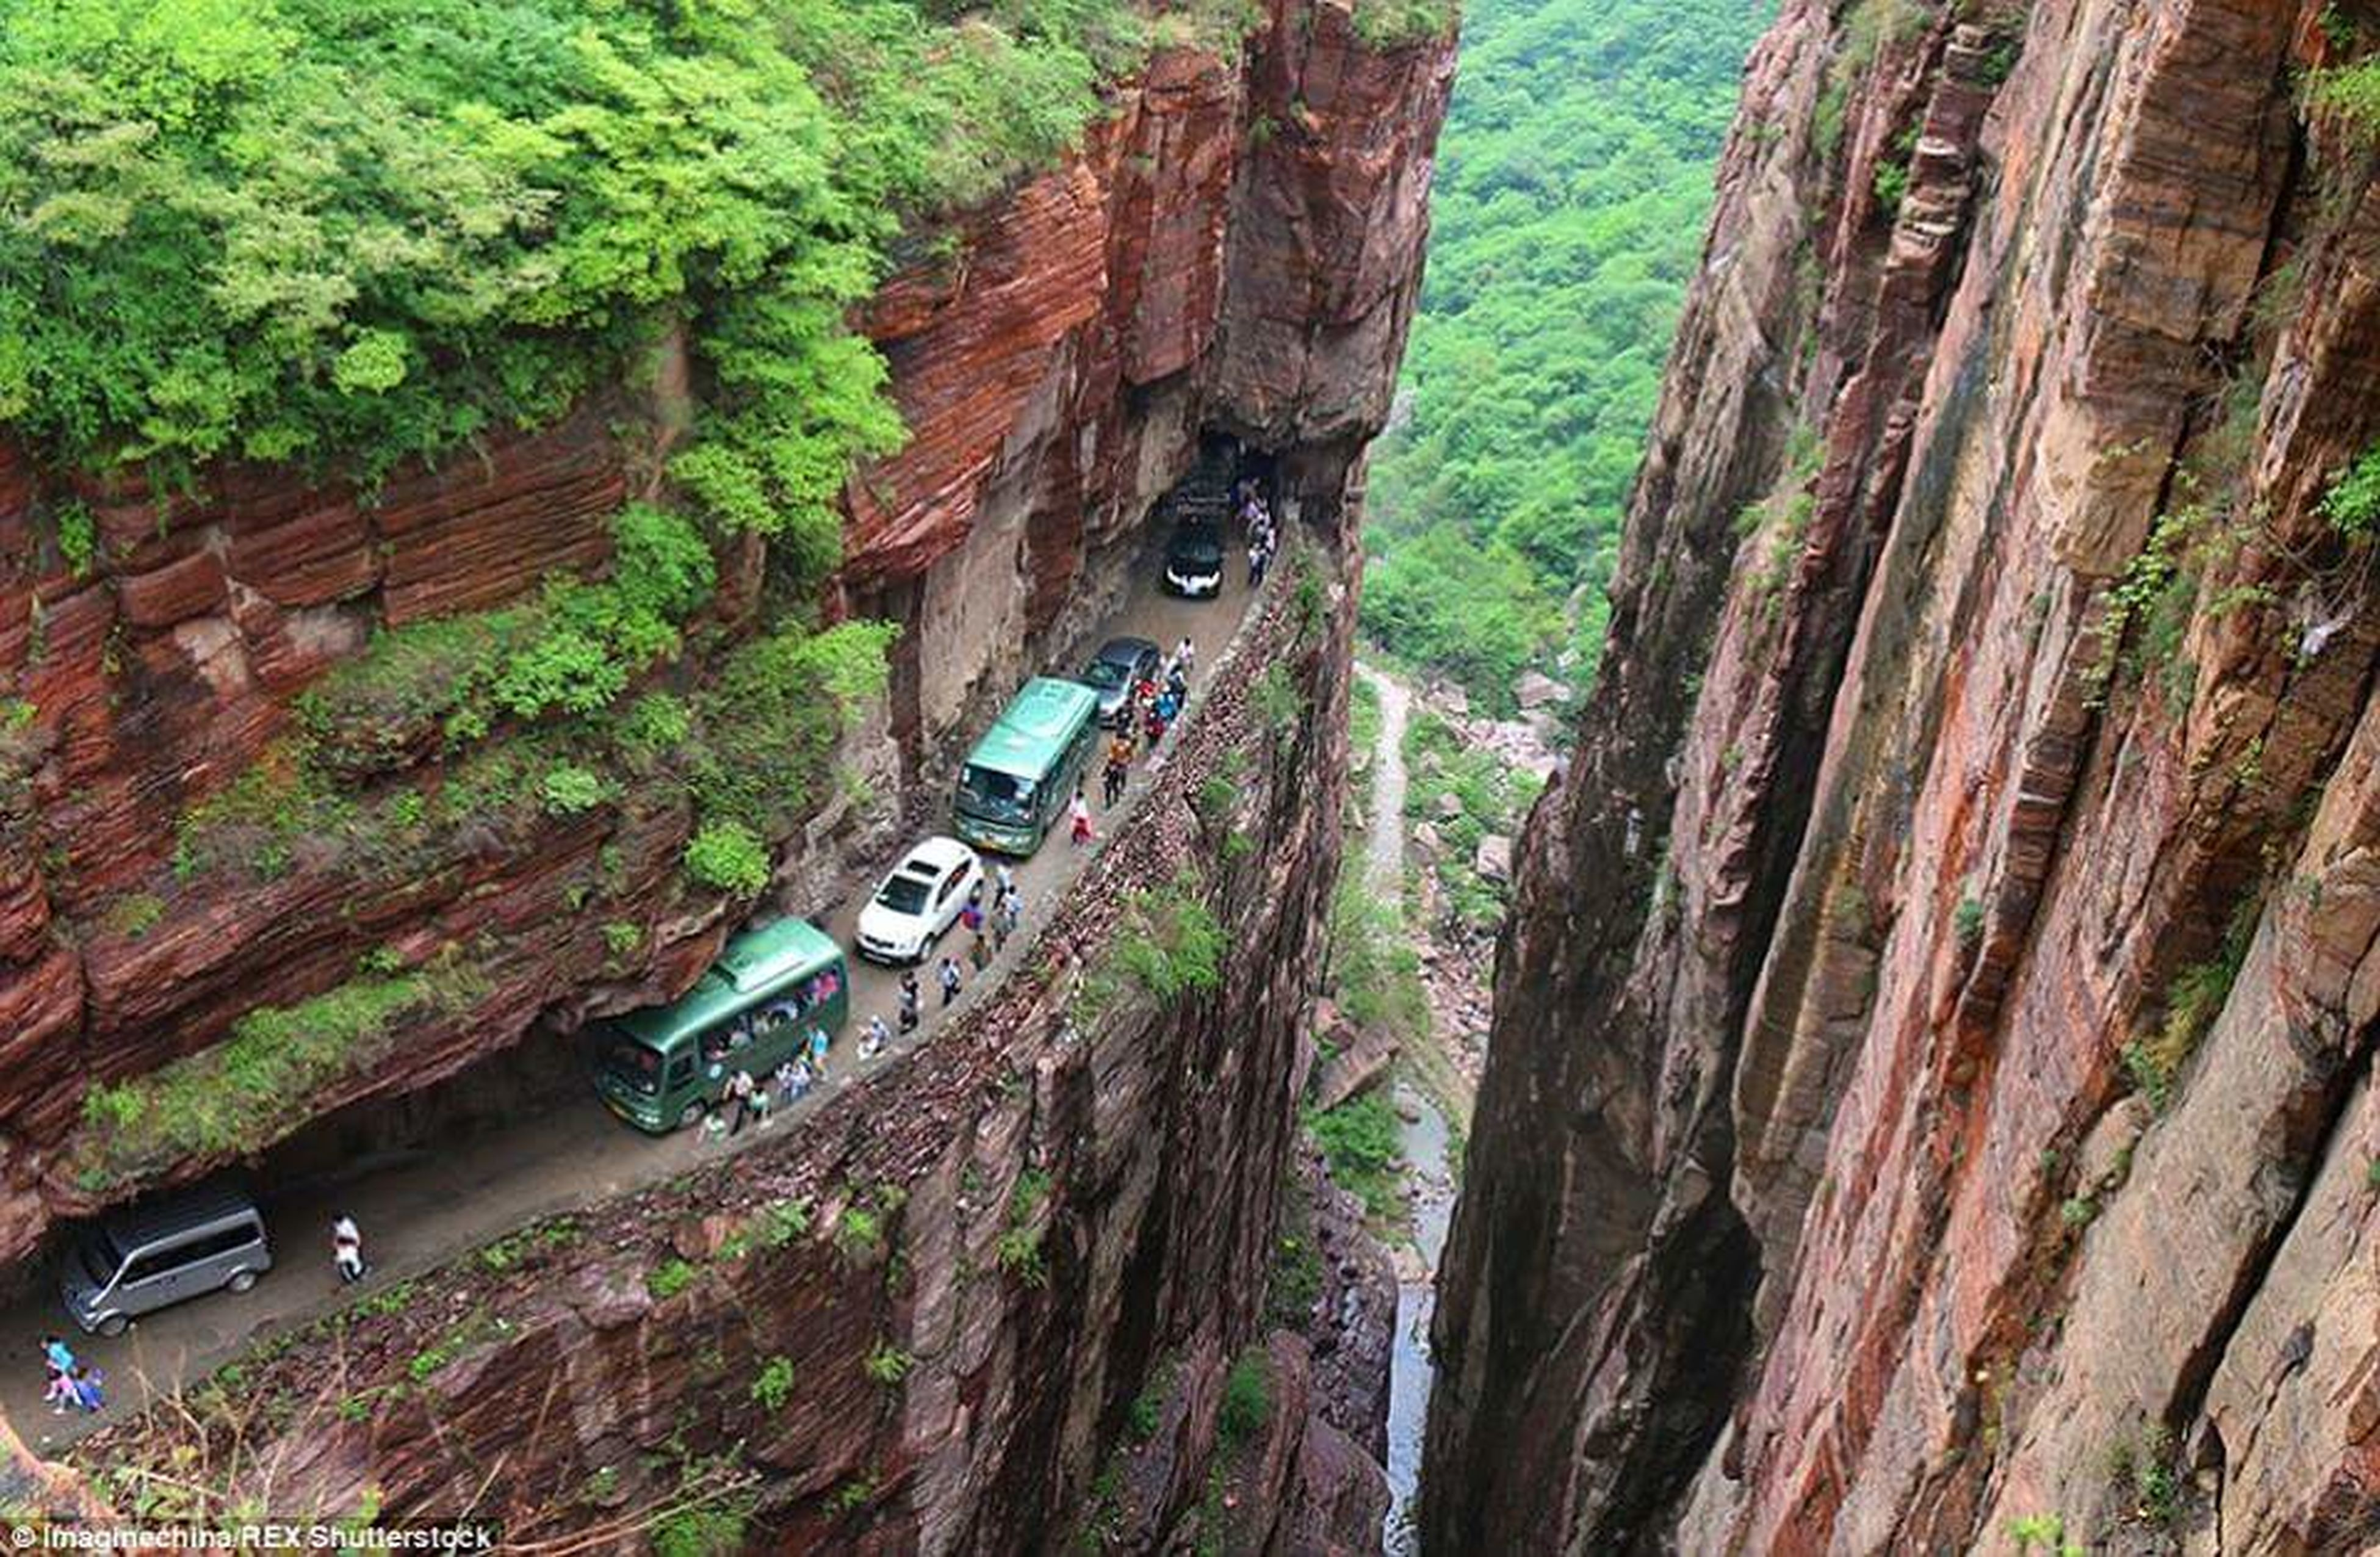 transportation, tree, forest, nature, high angle view, mode of transport, road, green color, mountain, growth, day, tranquility, travel, rock formation, outdoors, car, beauty in nature, rock - object, lush foliage, tranquil scene